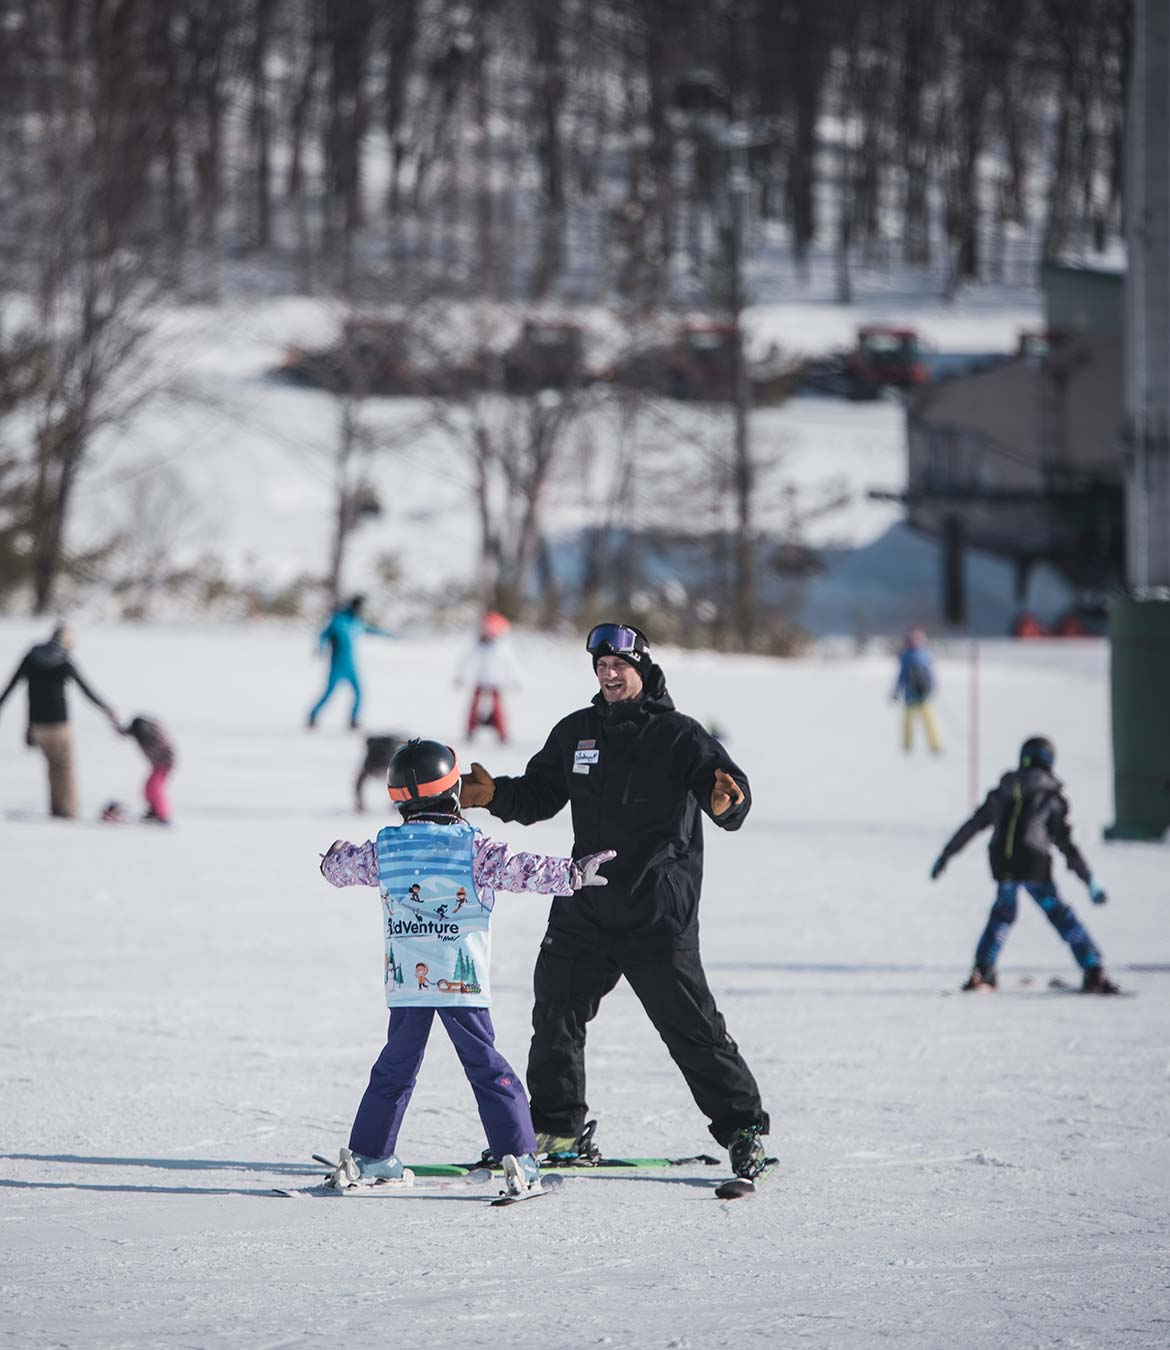 Ski instructor out on the slopes teaching young child how to ski